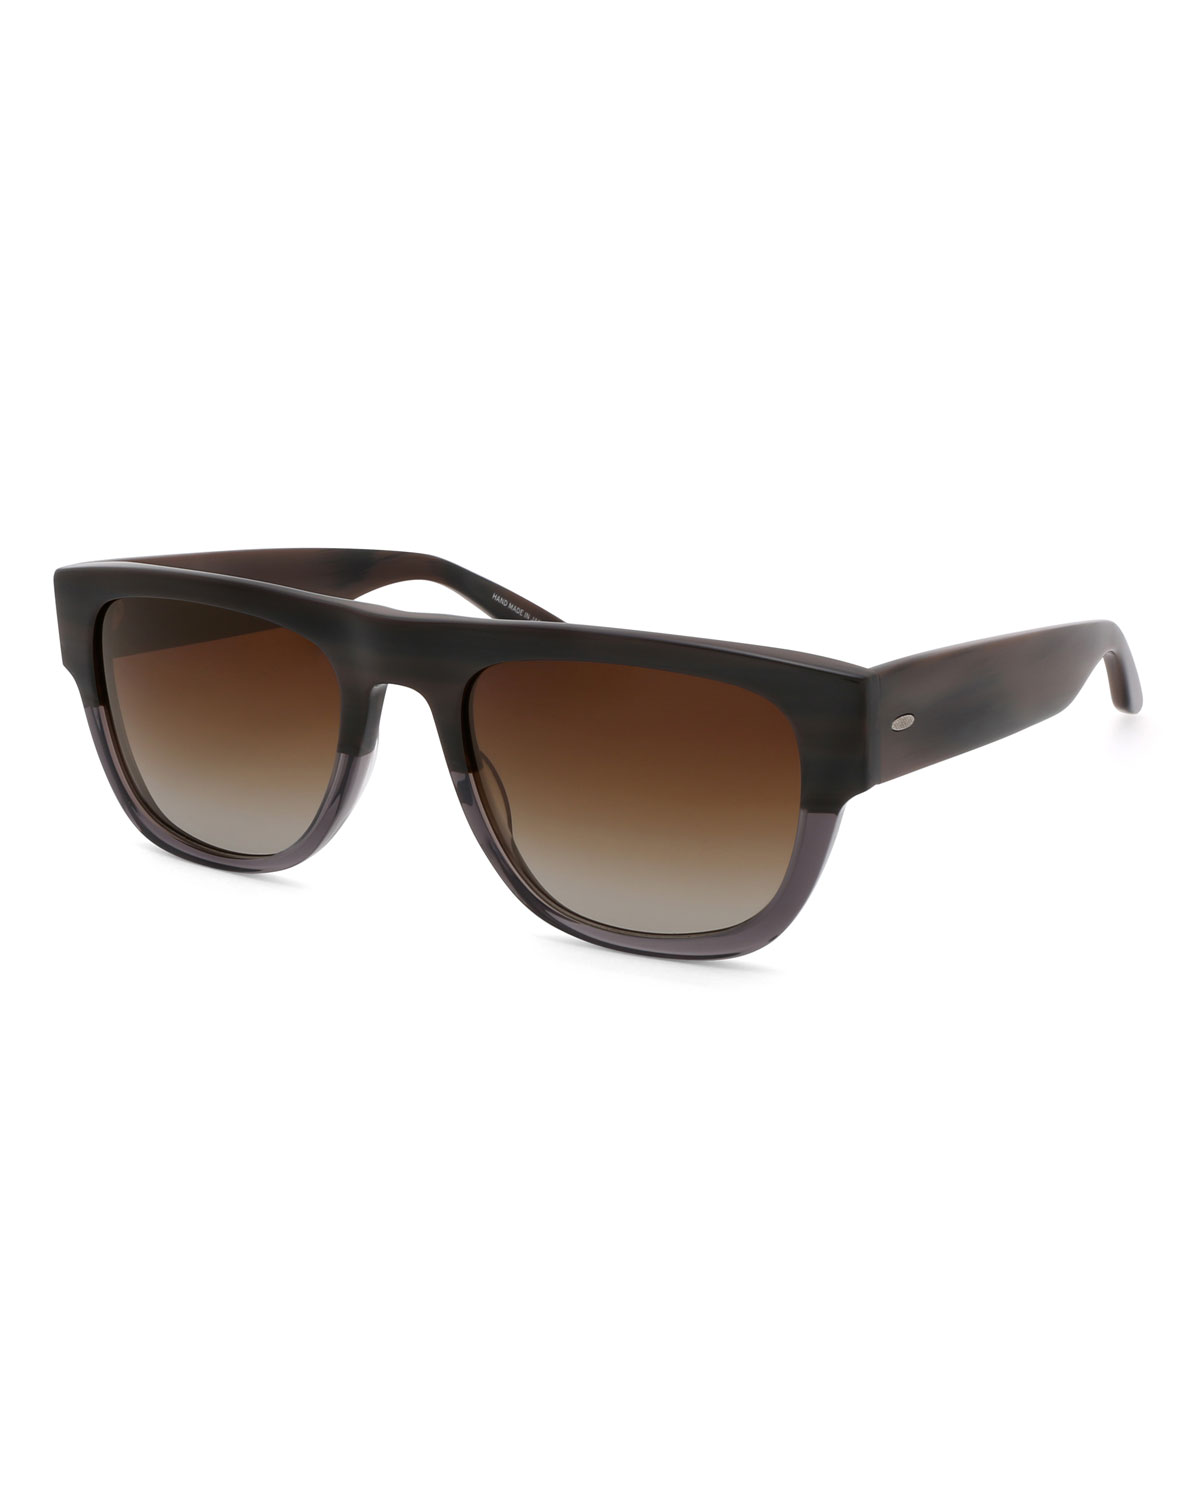 adf13a12aa0 Barton Perreira Men s Kahuna Square Acetate Sunglasses In Dark Brown ...